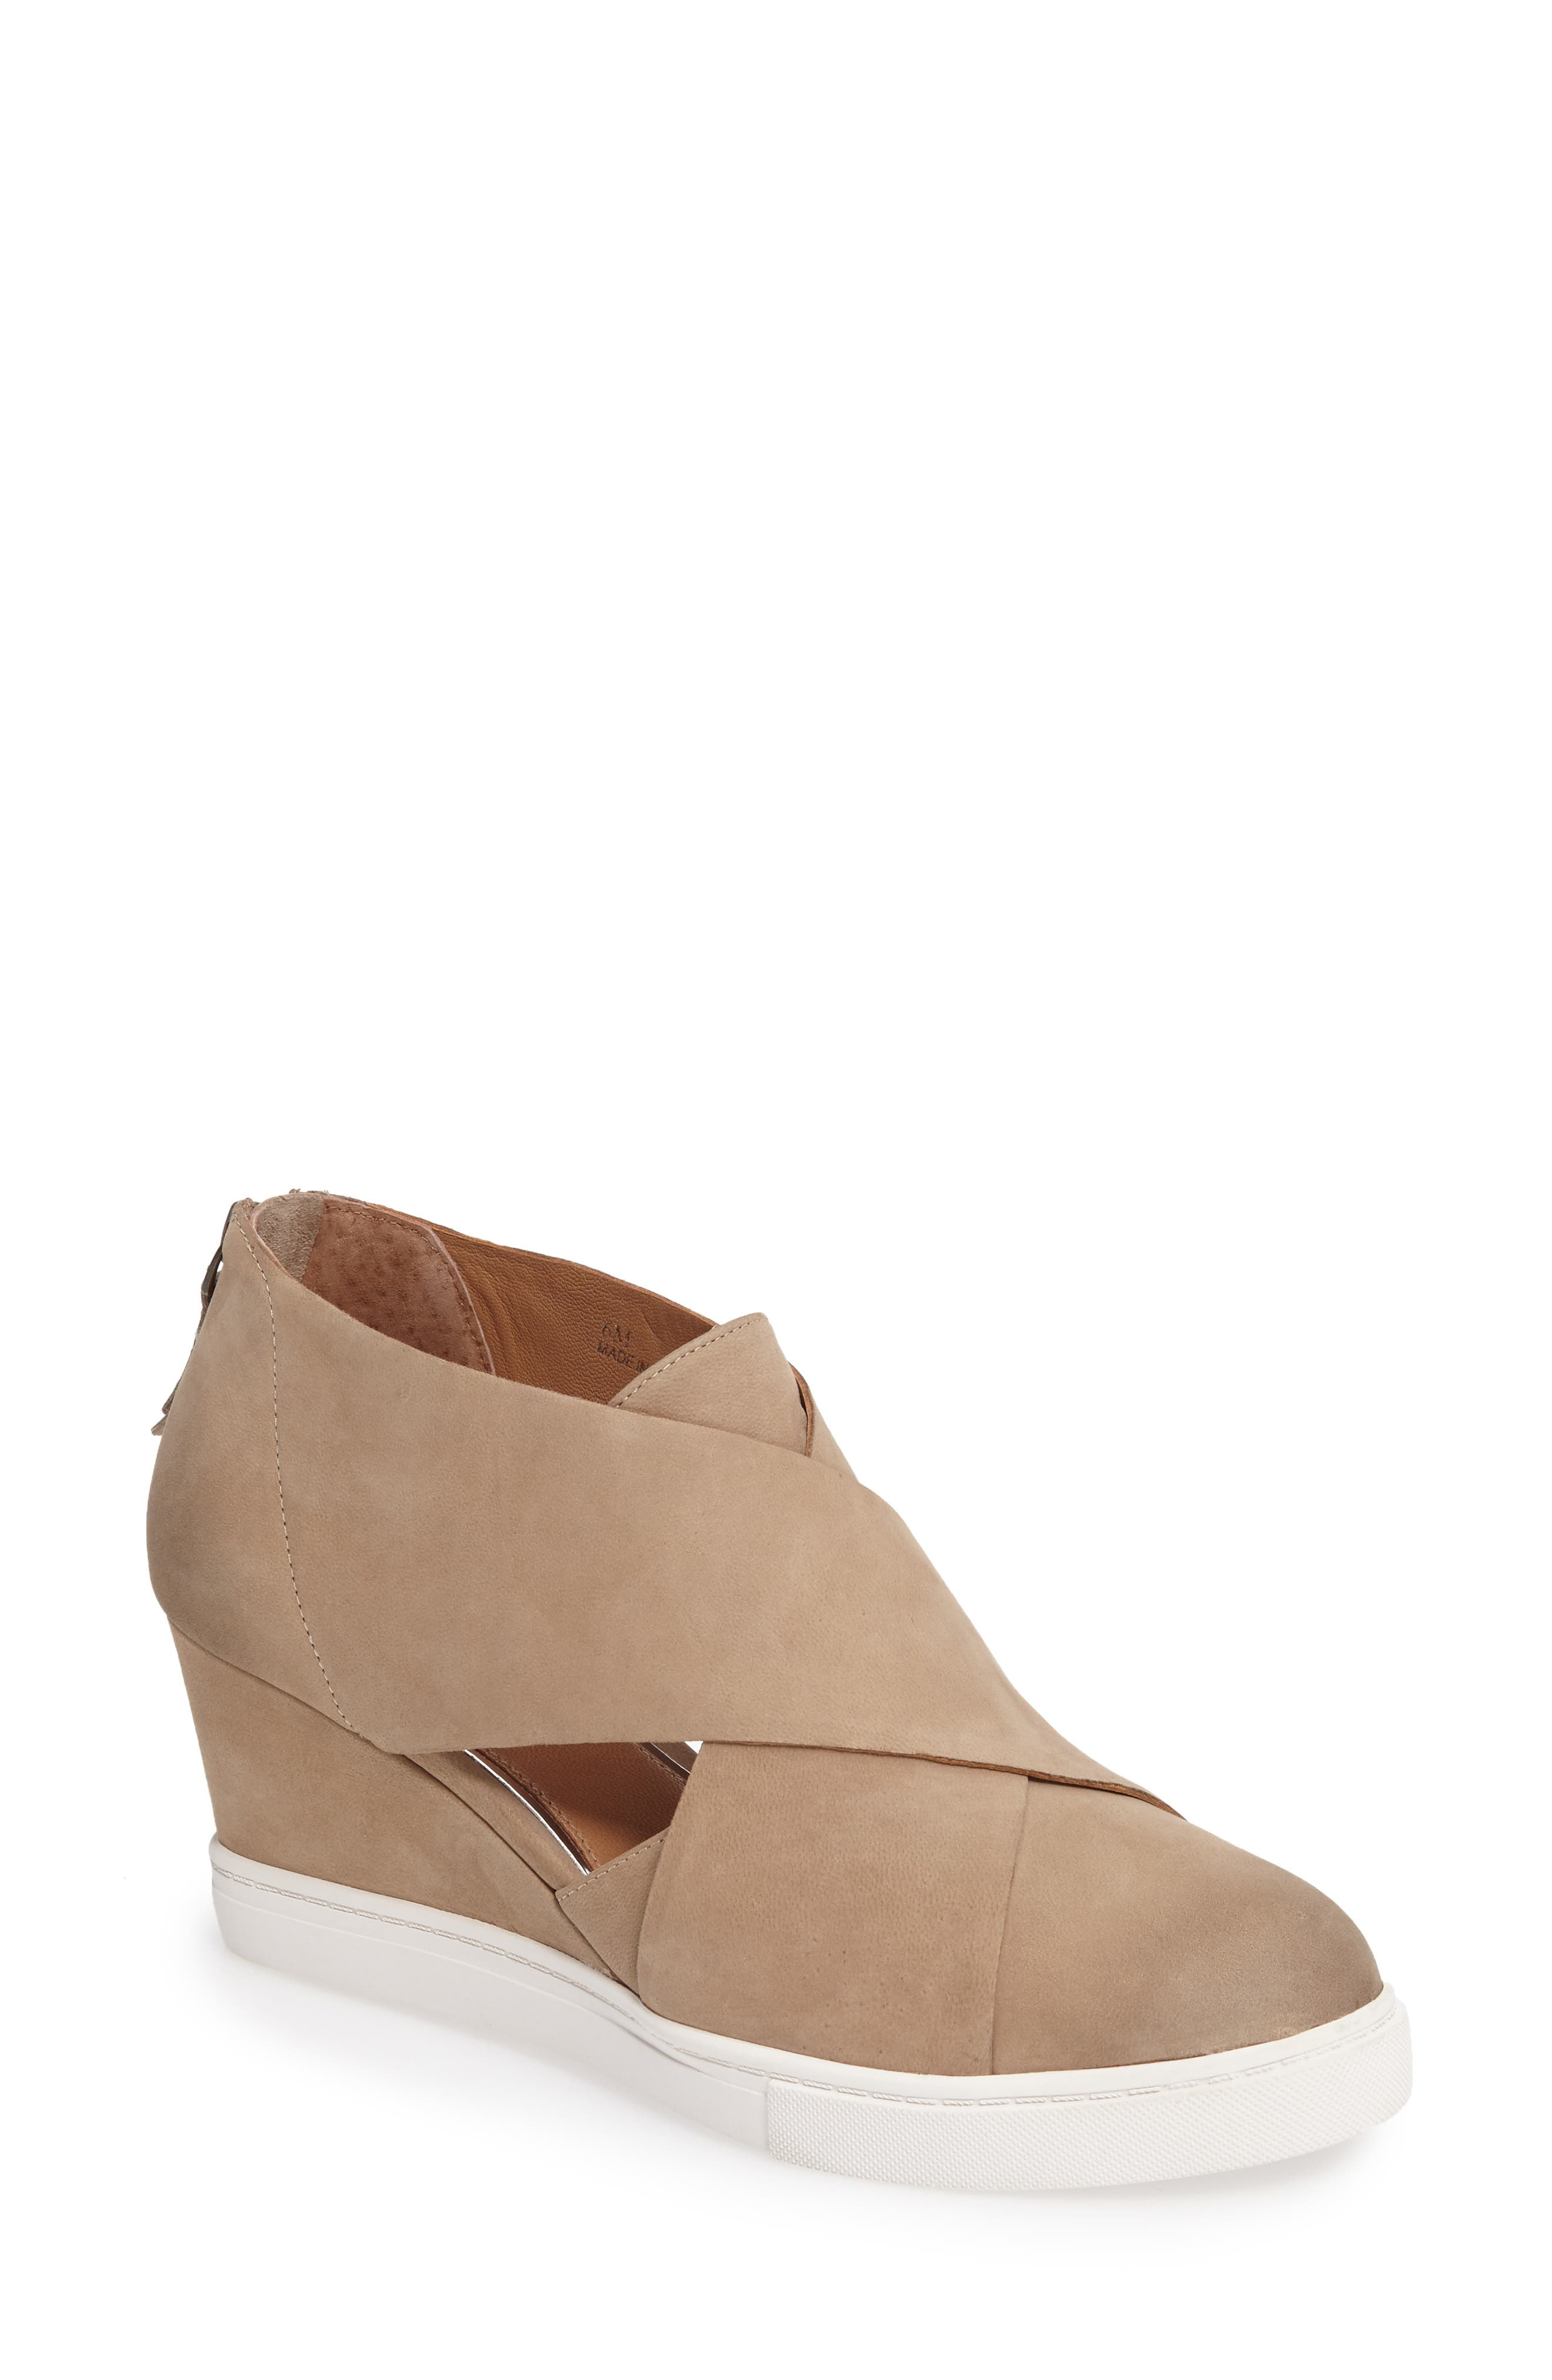 Linea Paolo Faith Wedge Pump (Women)